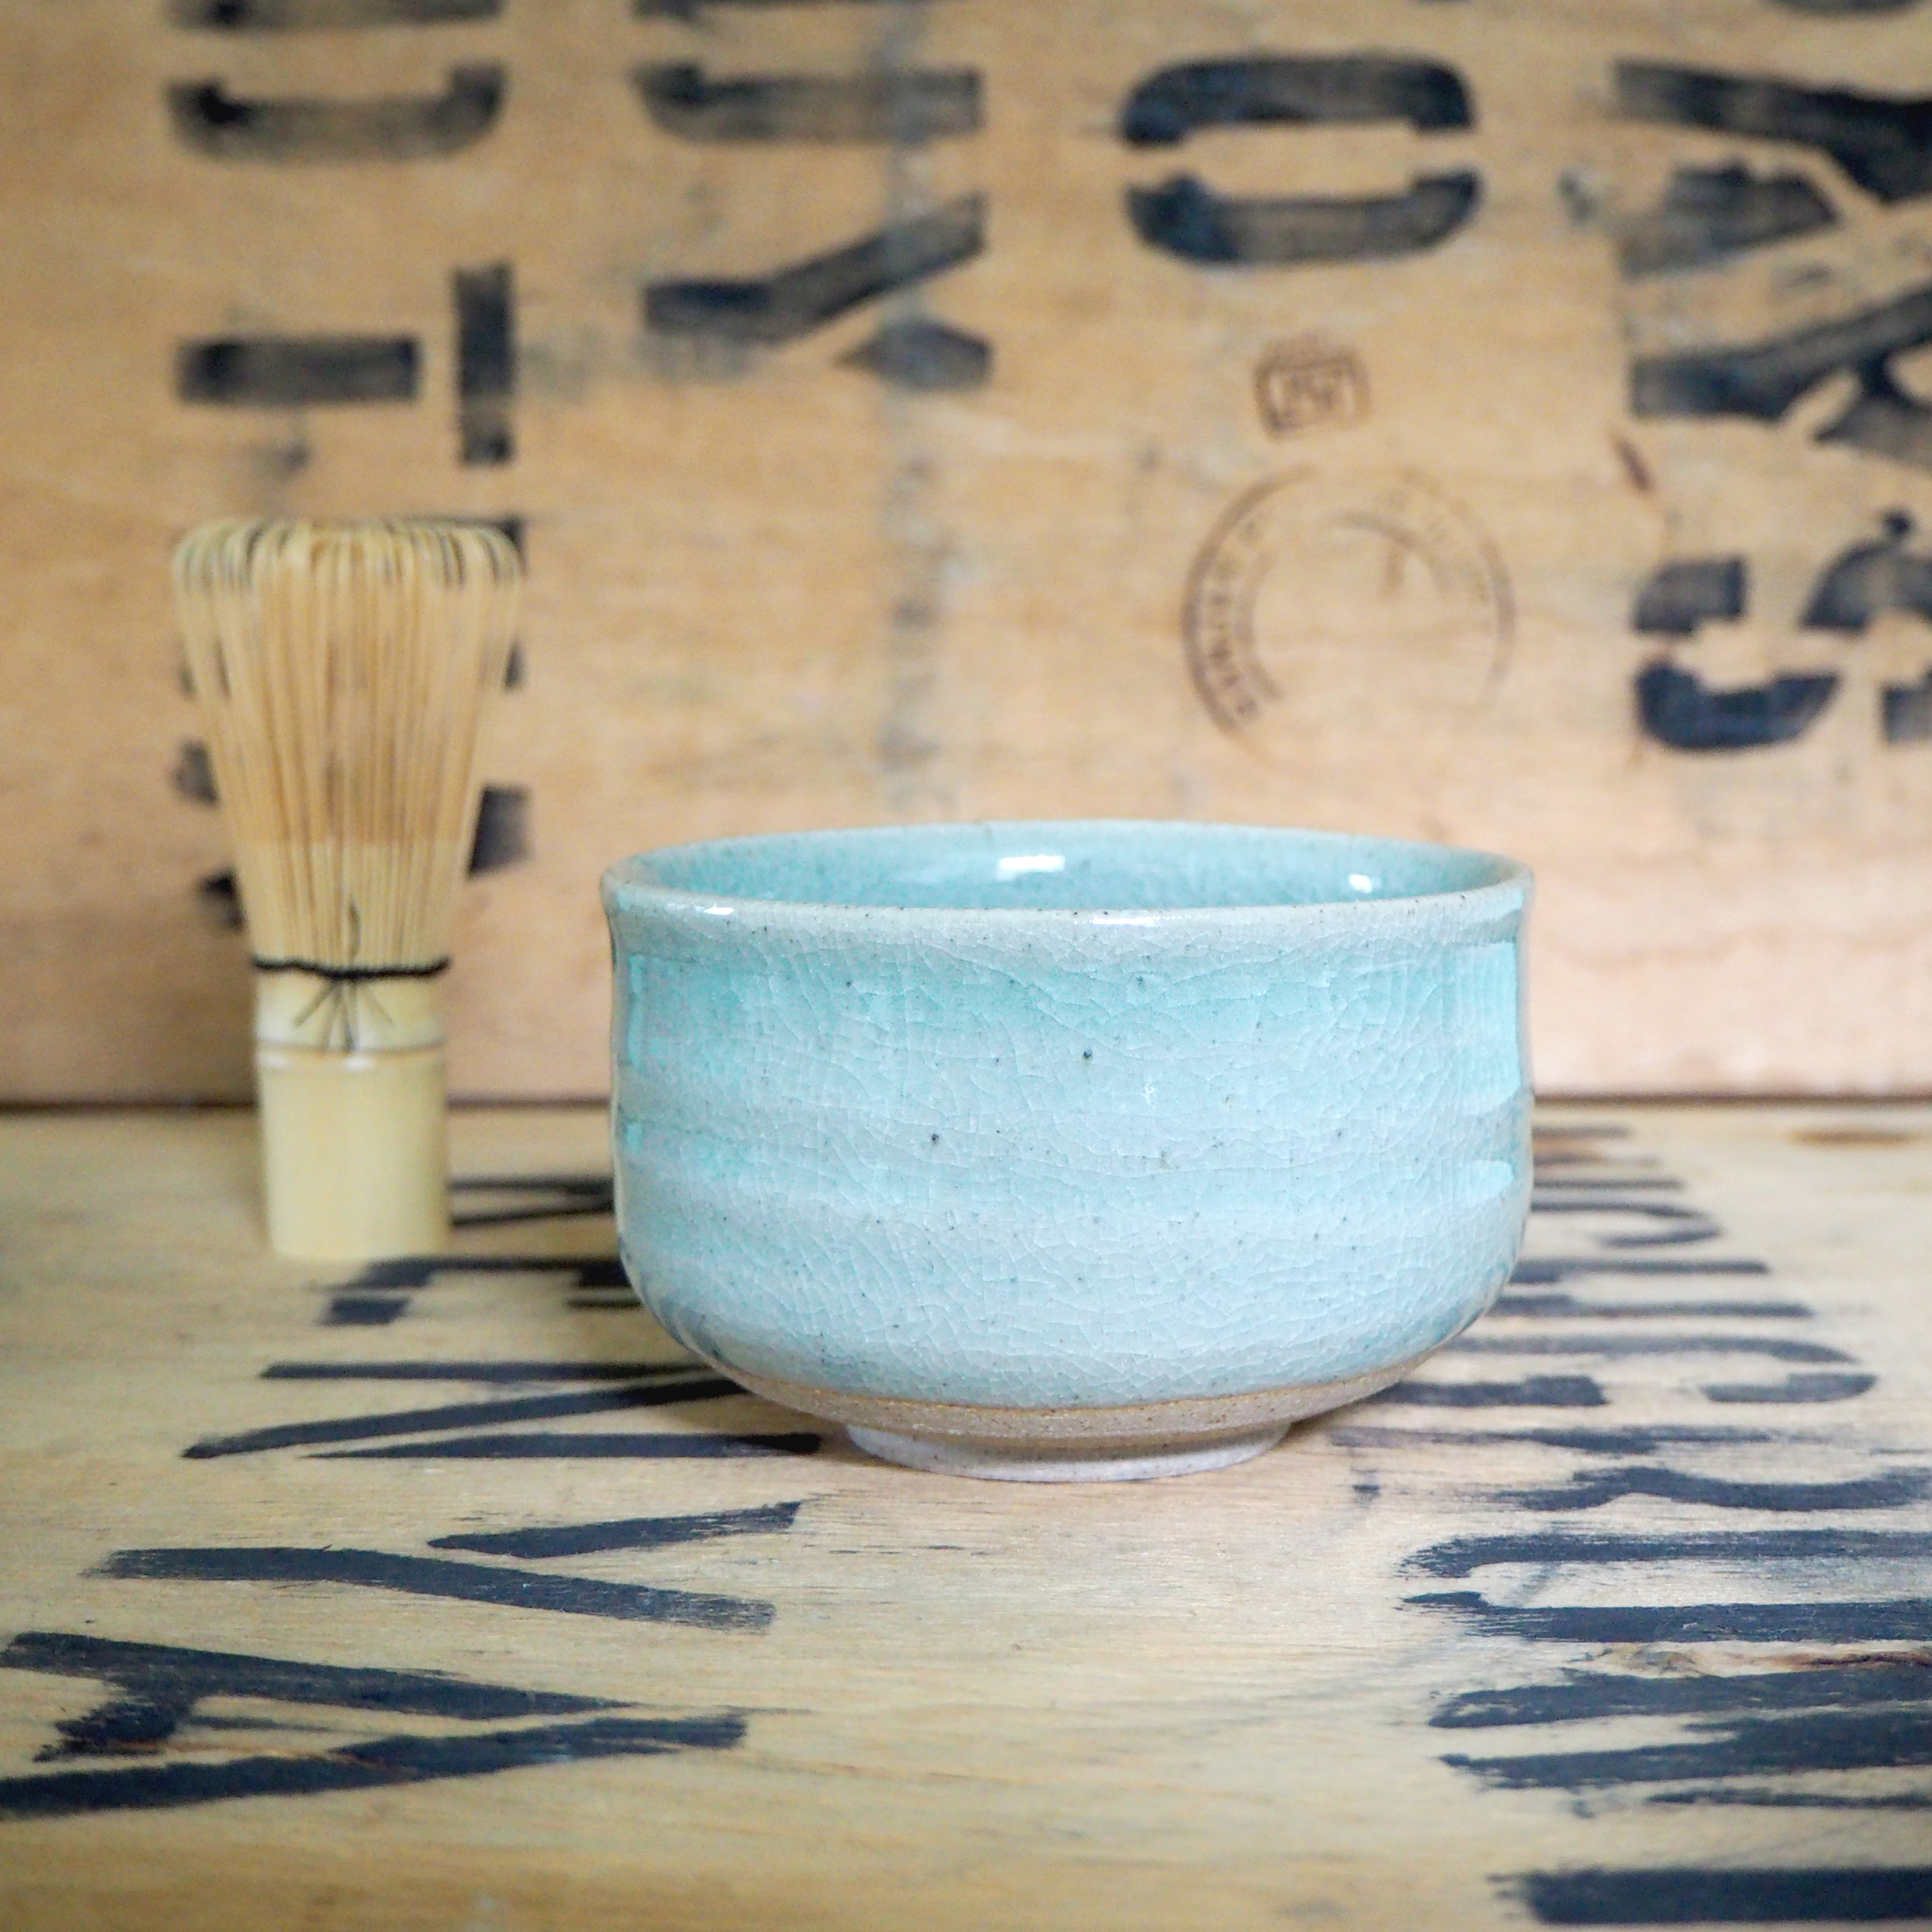 Celadon Matcha Bowl (1) by Jacob Bodilly